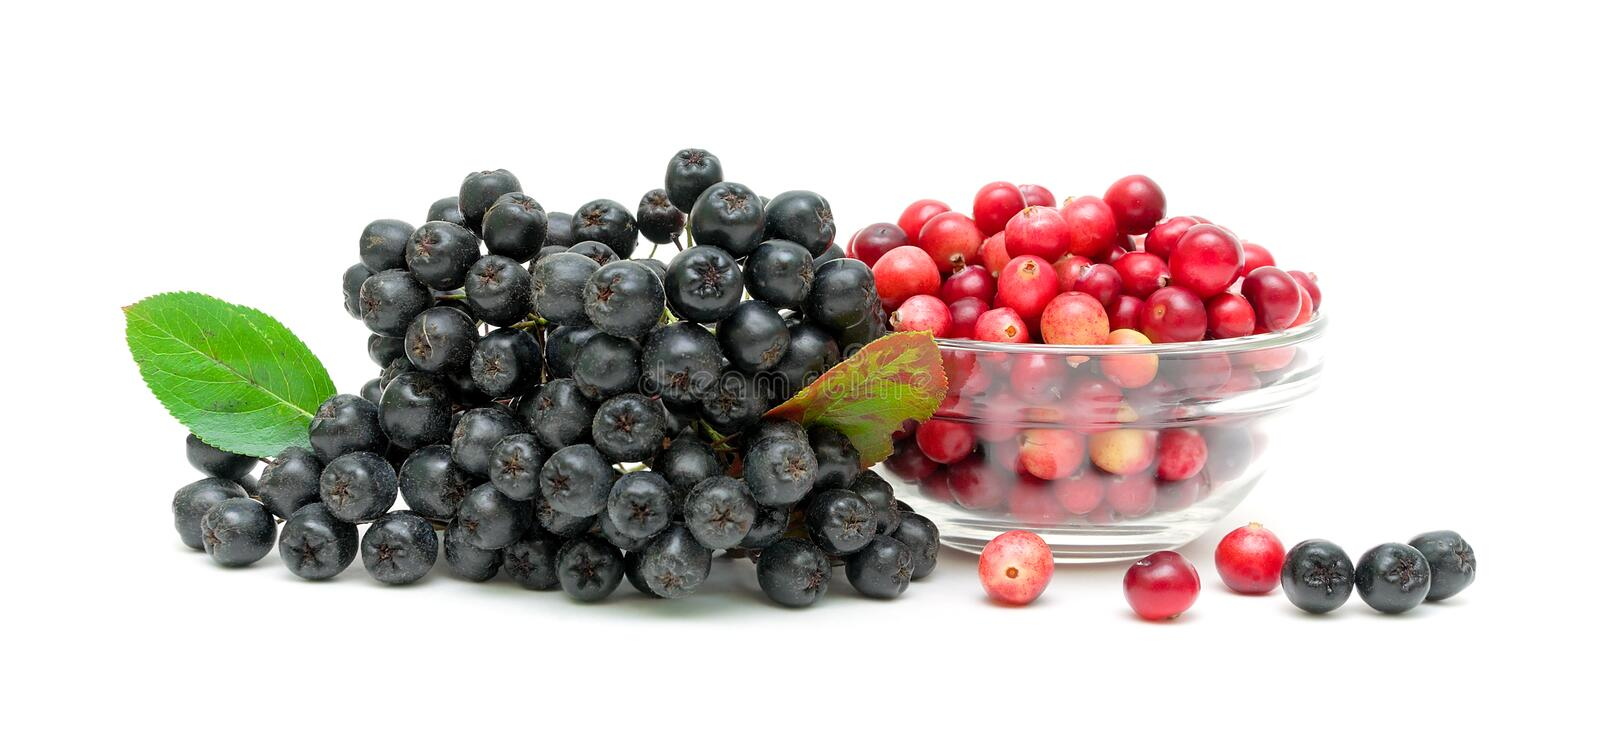 Chokeberry and ripe cranberries on a white background royalty free stock image